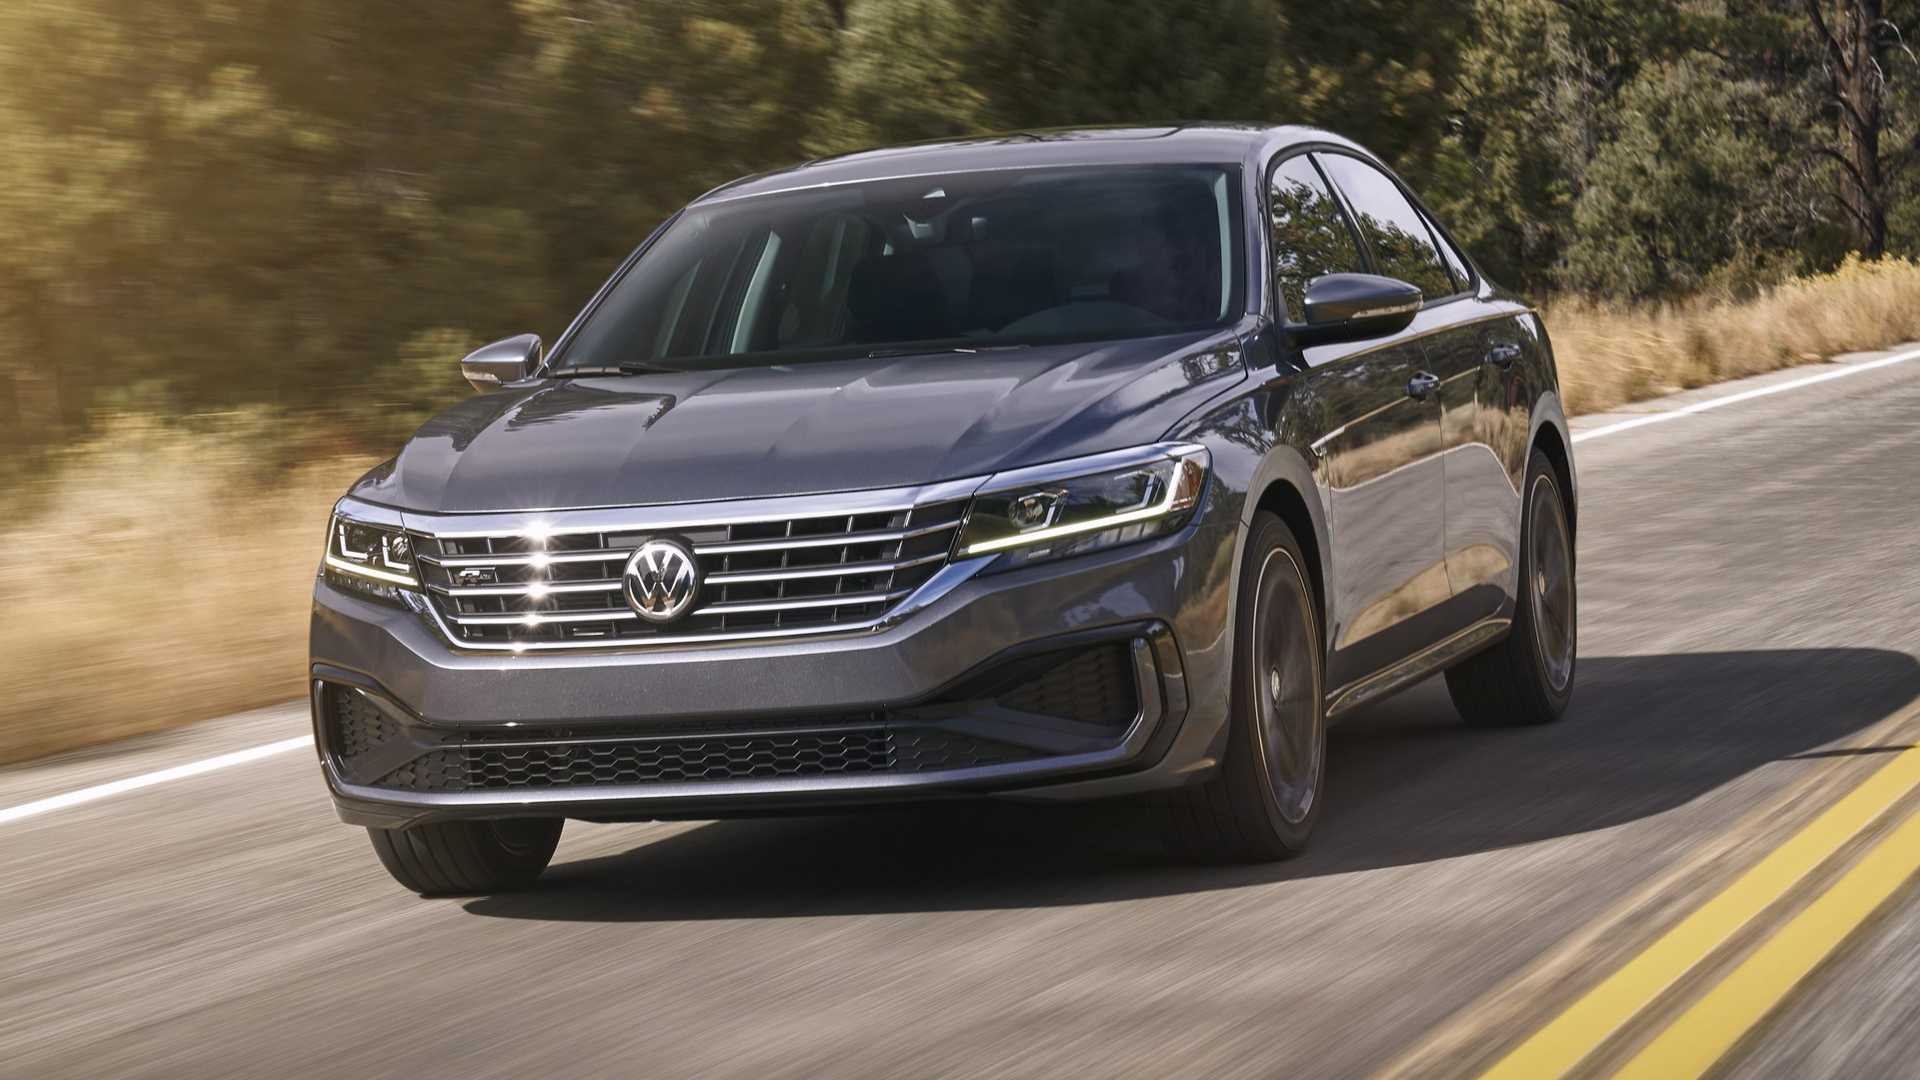 37 The 2020 VW Passat Tdi Exterior